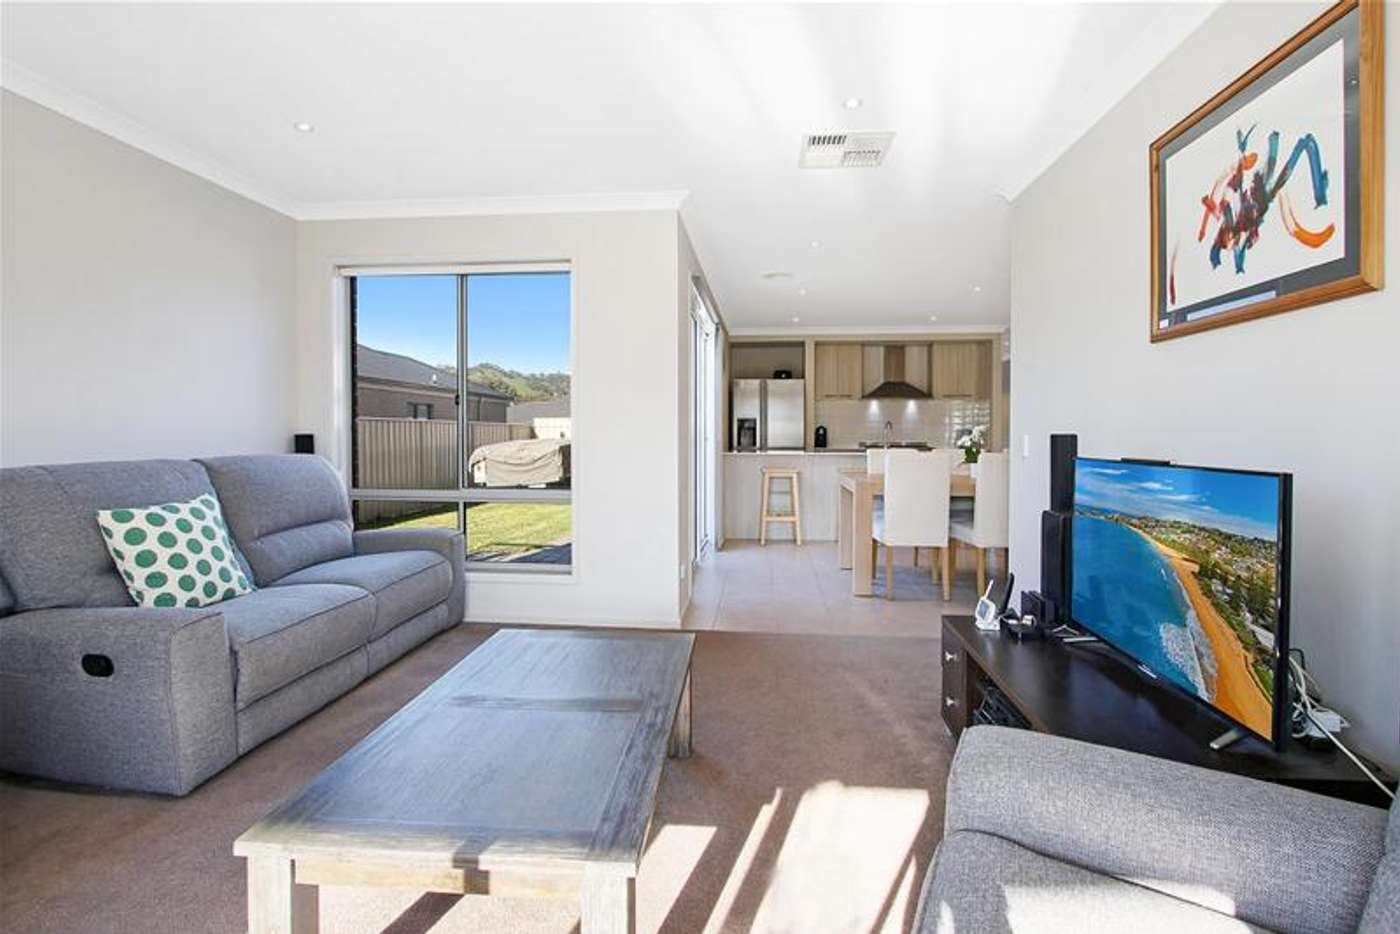 Fifth view of Homely house listing, 13 Bugden Street, Wodonga VIC 3690